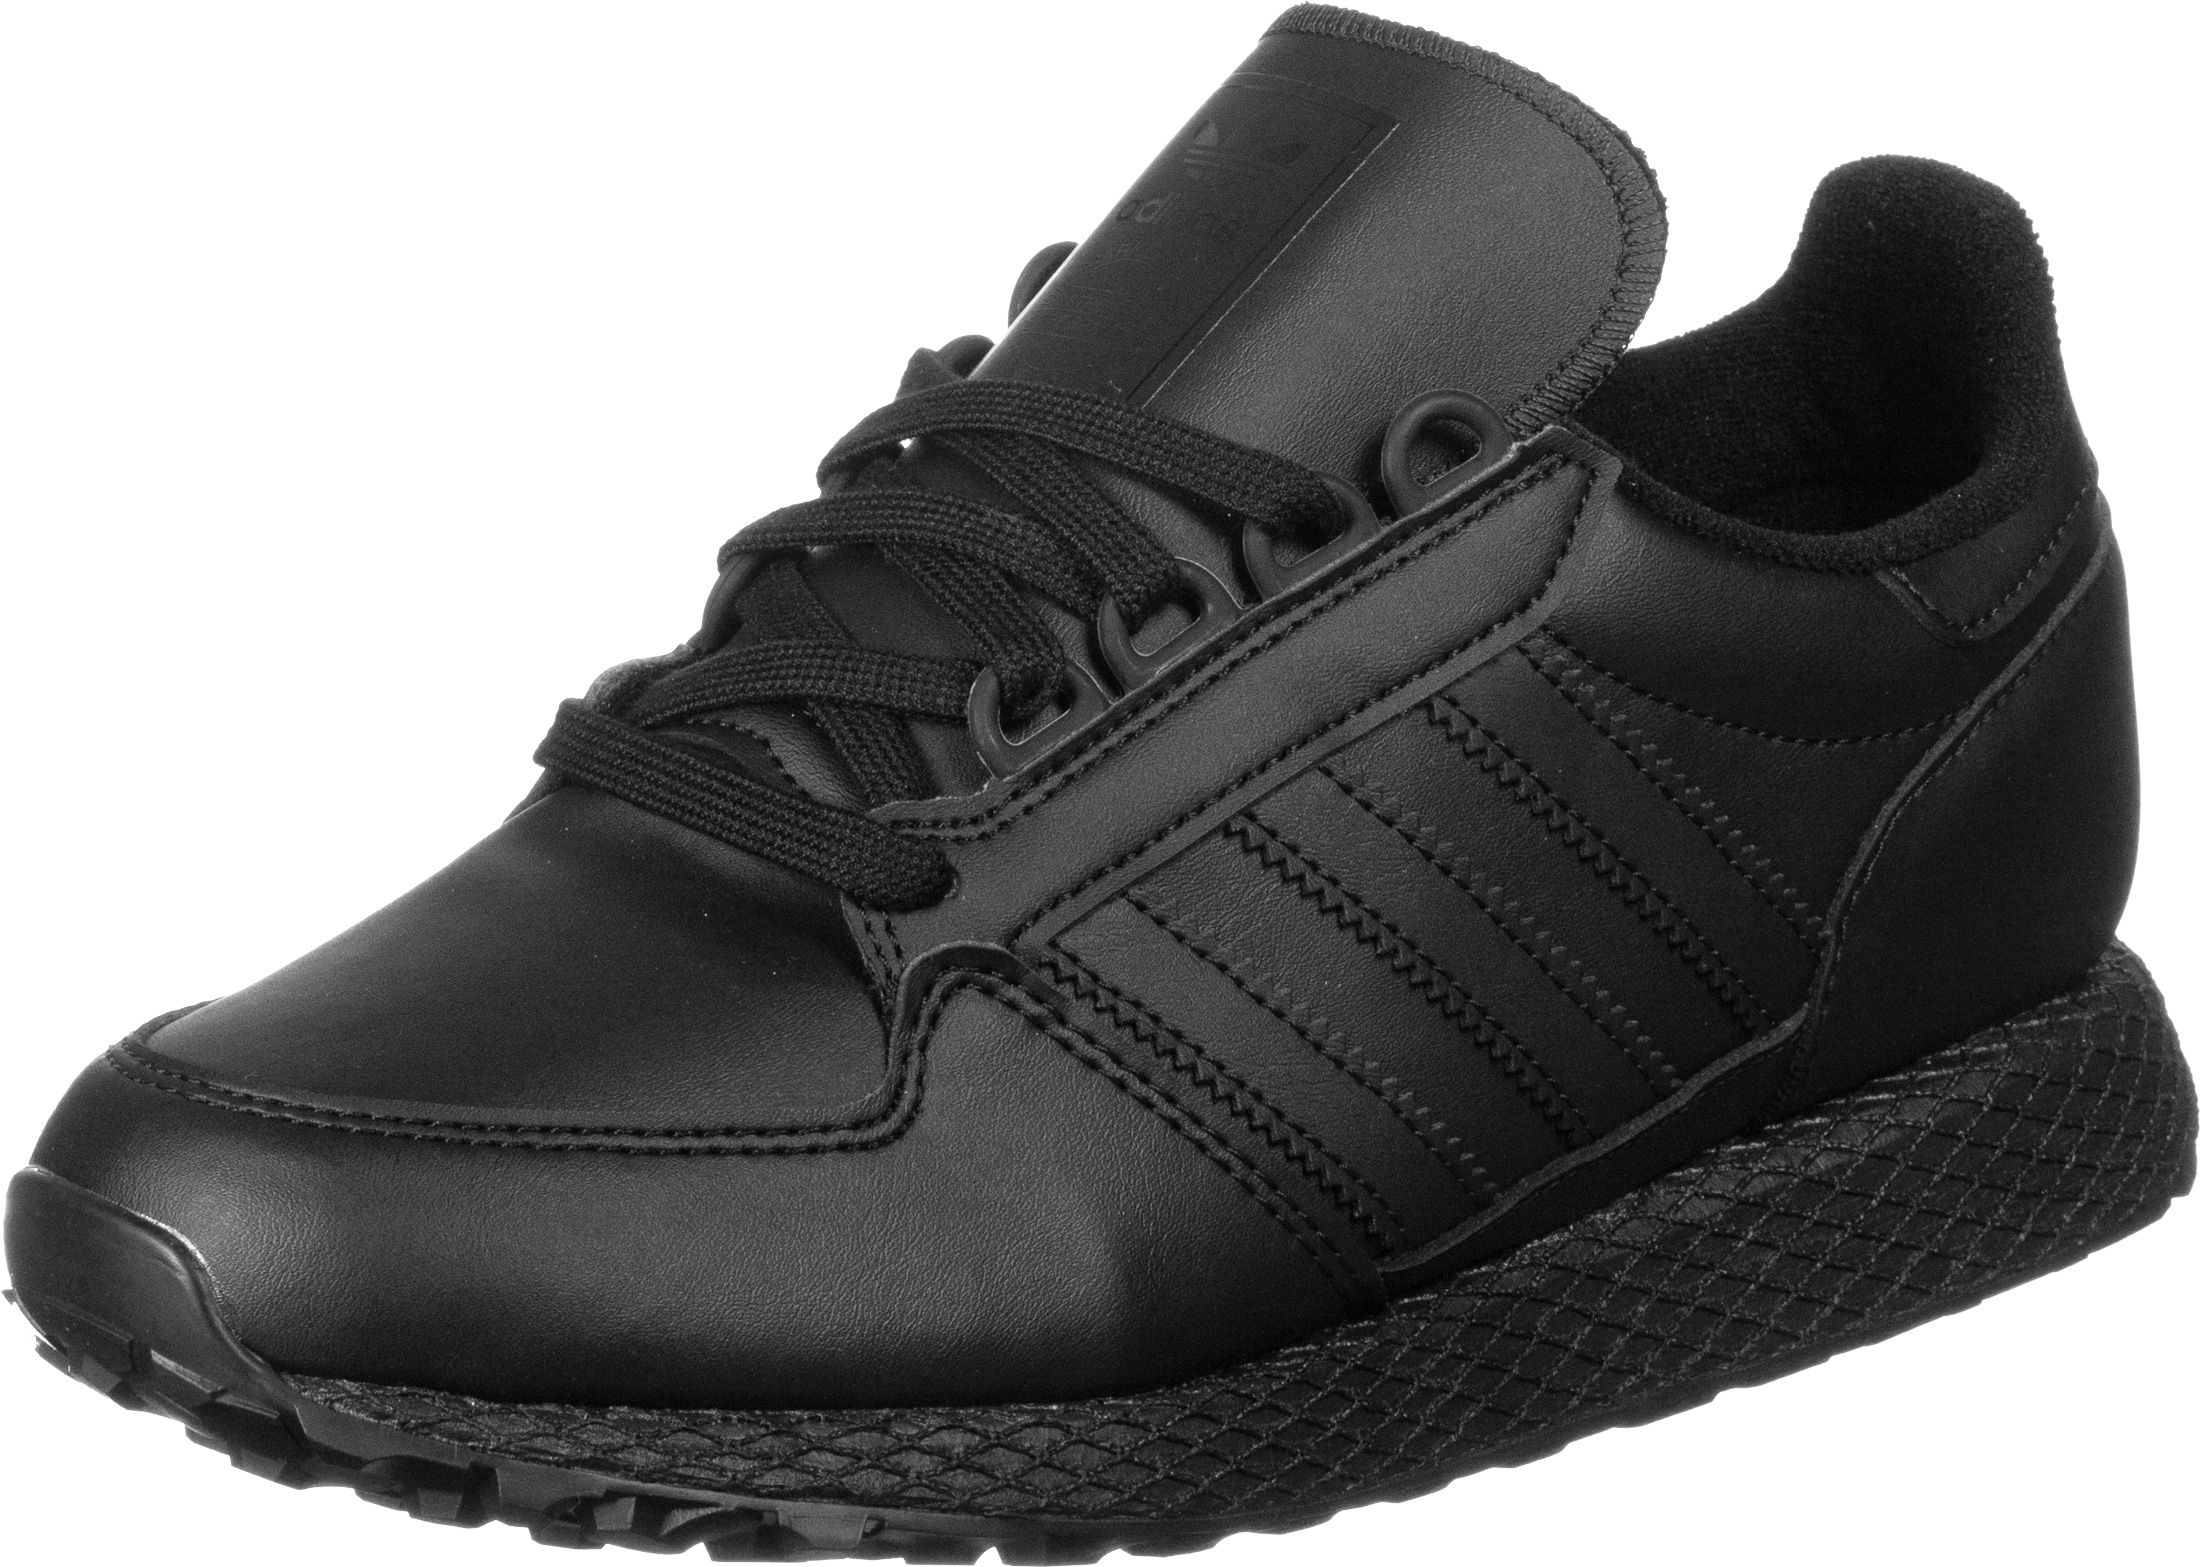 Ondas aprobar accidente  adidas Forest Grove J W - Sneakers Low at Stylefile